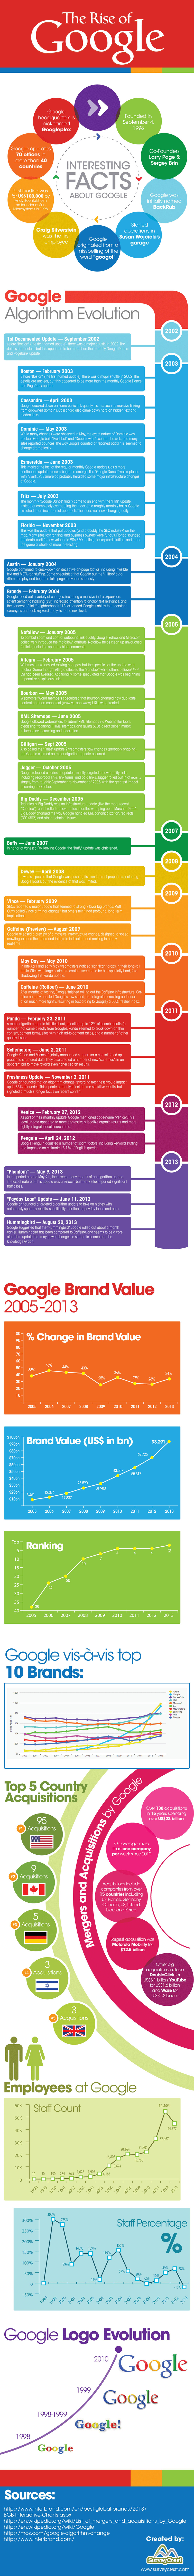 infographie-rise-of-google infographie